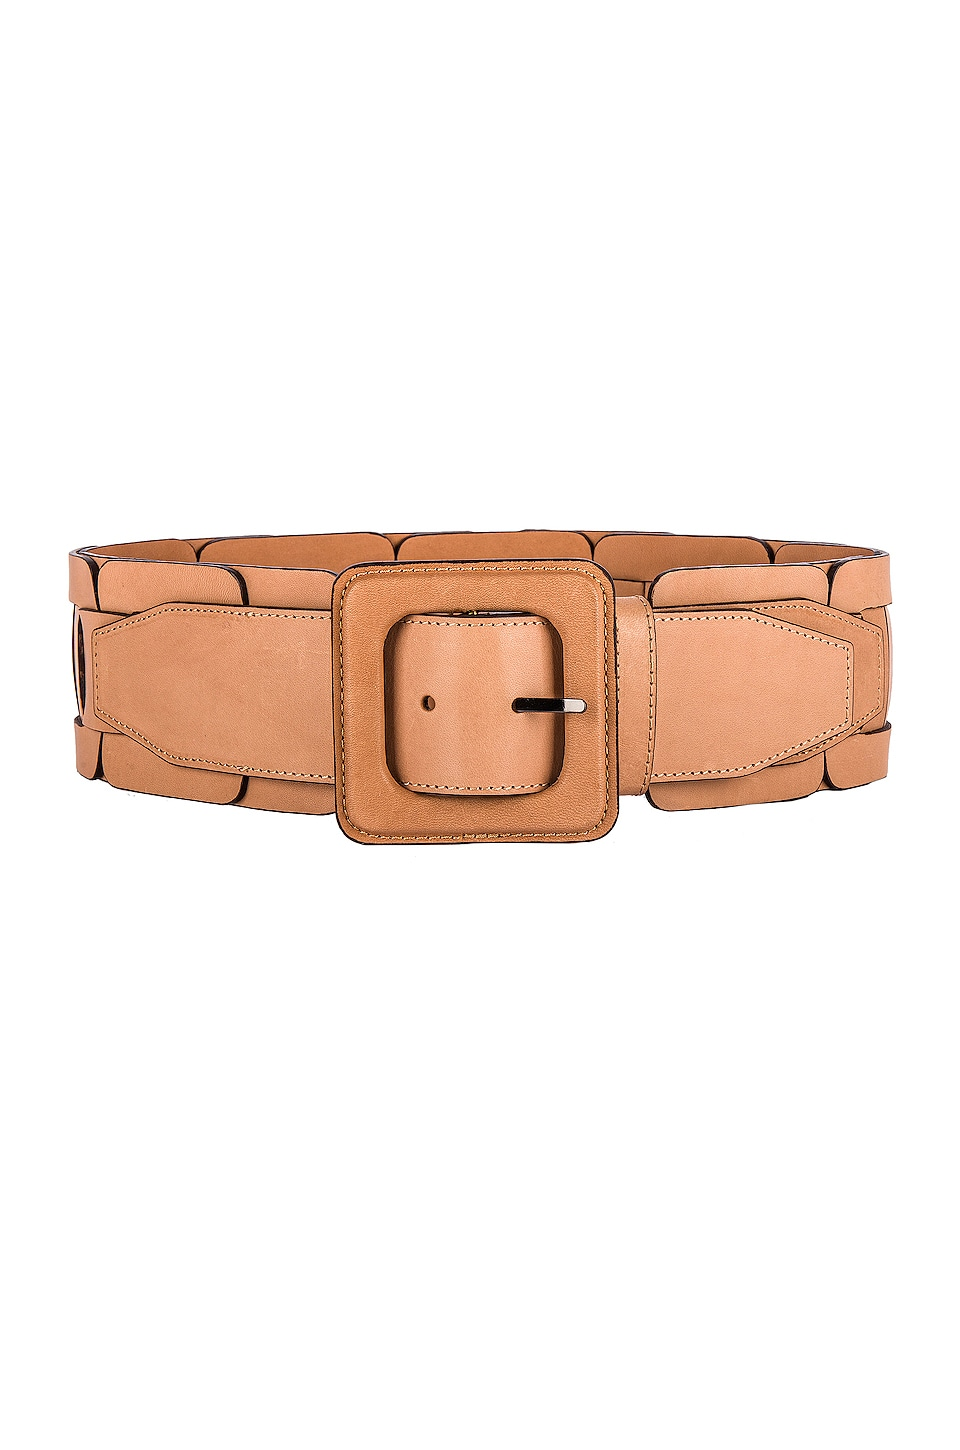 Zimmermann Square Link Wide Waist Belt in Saddle Tan